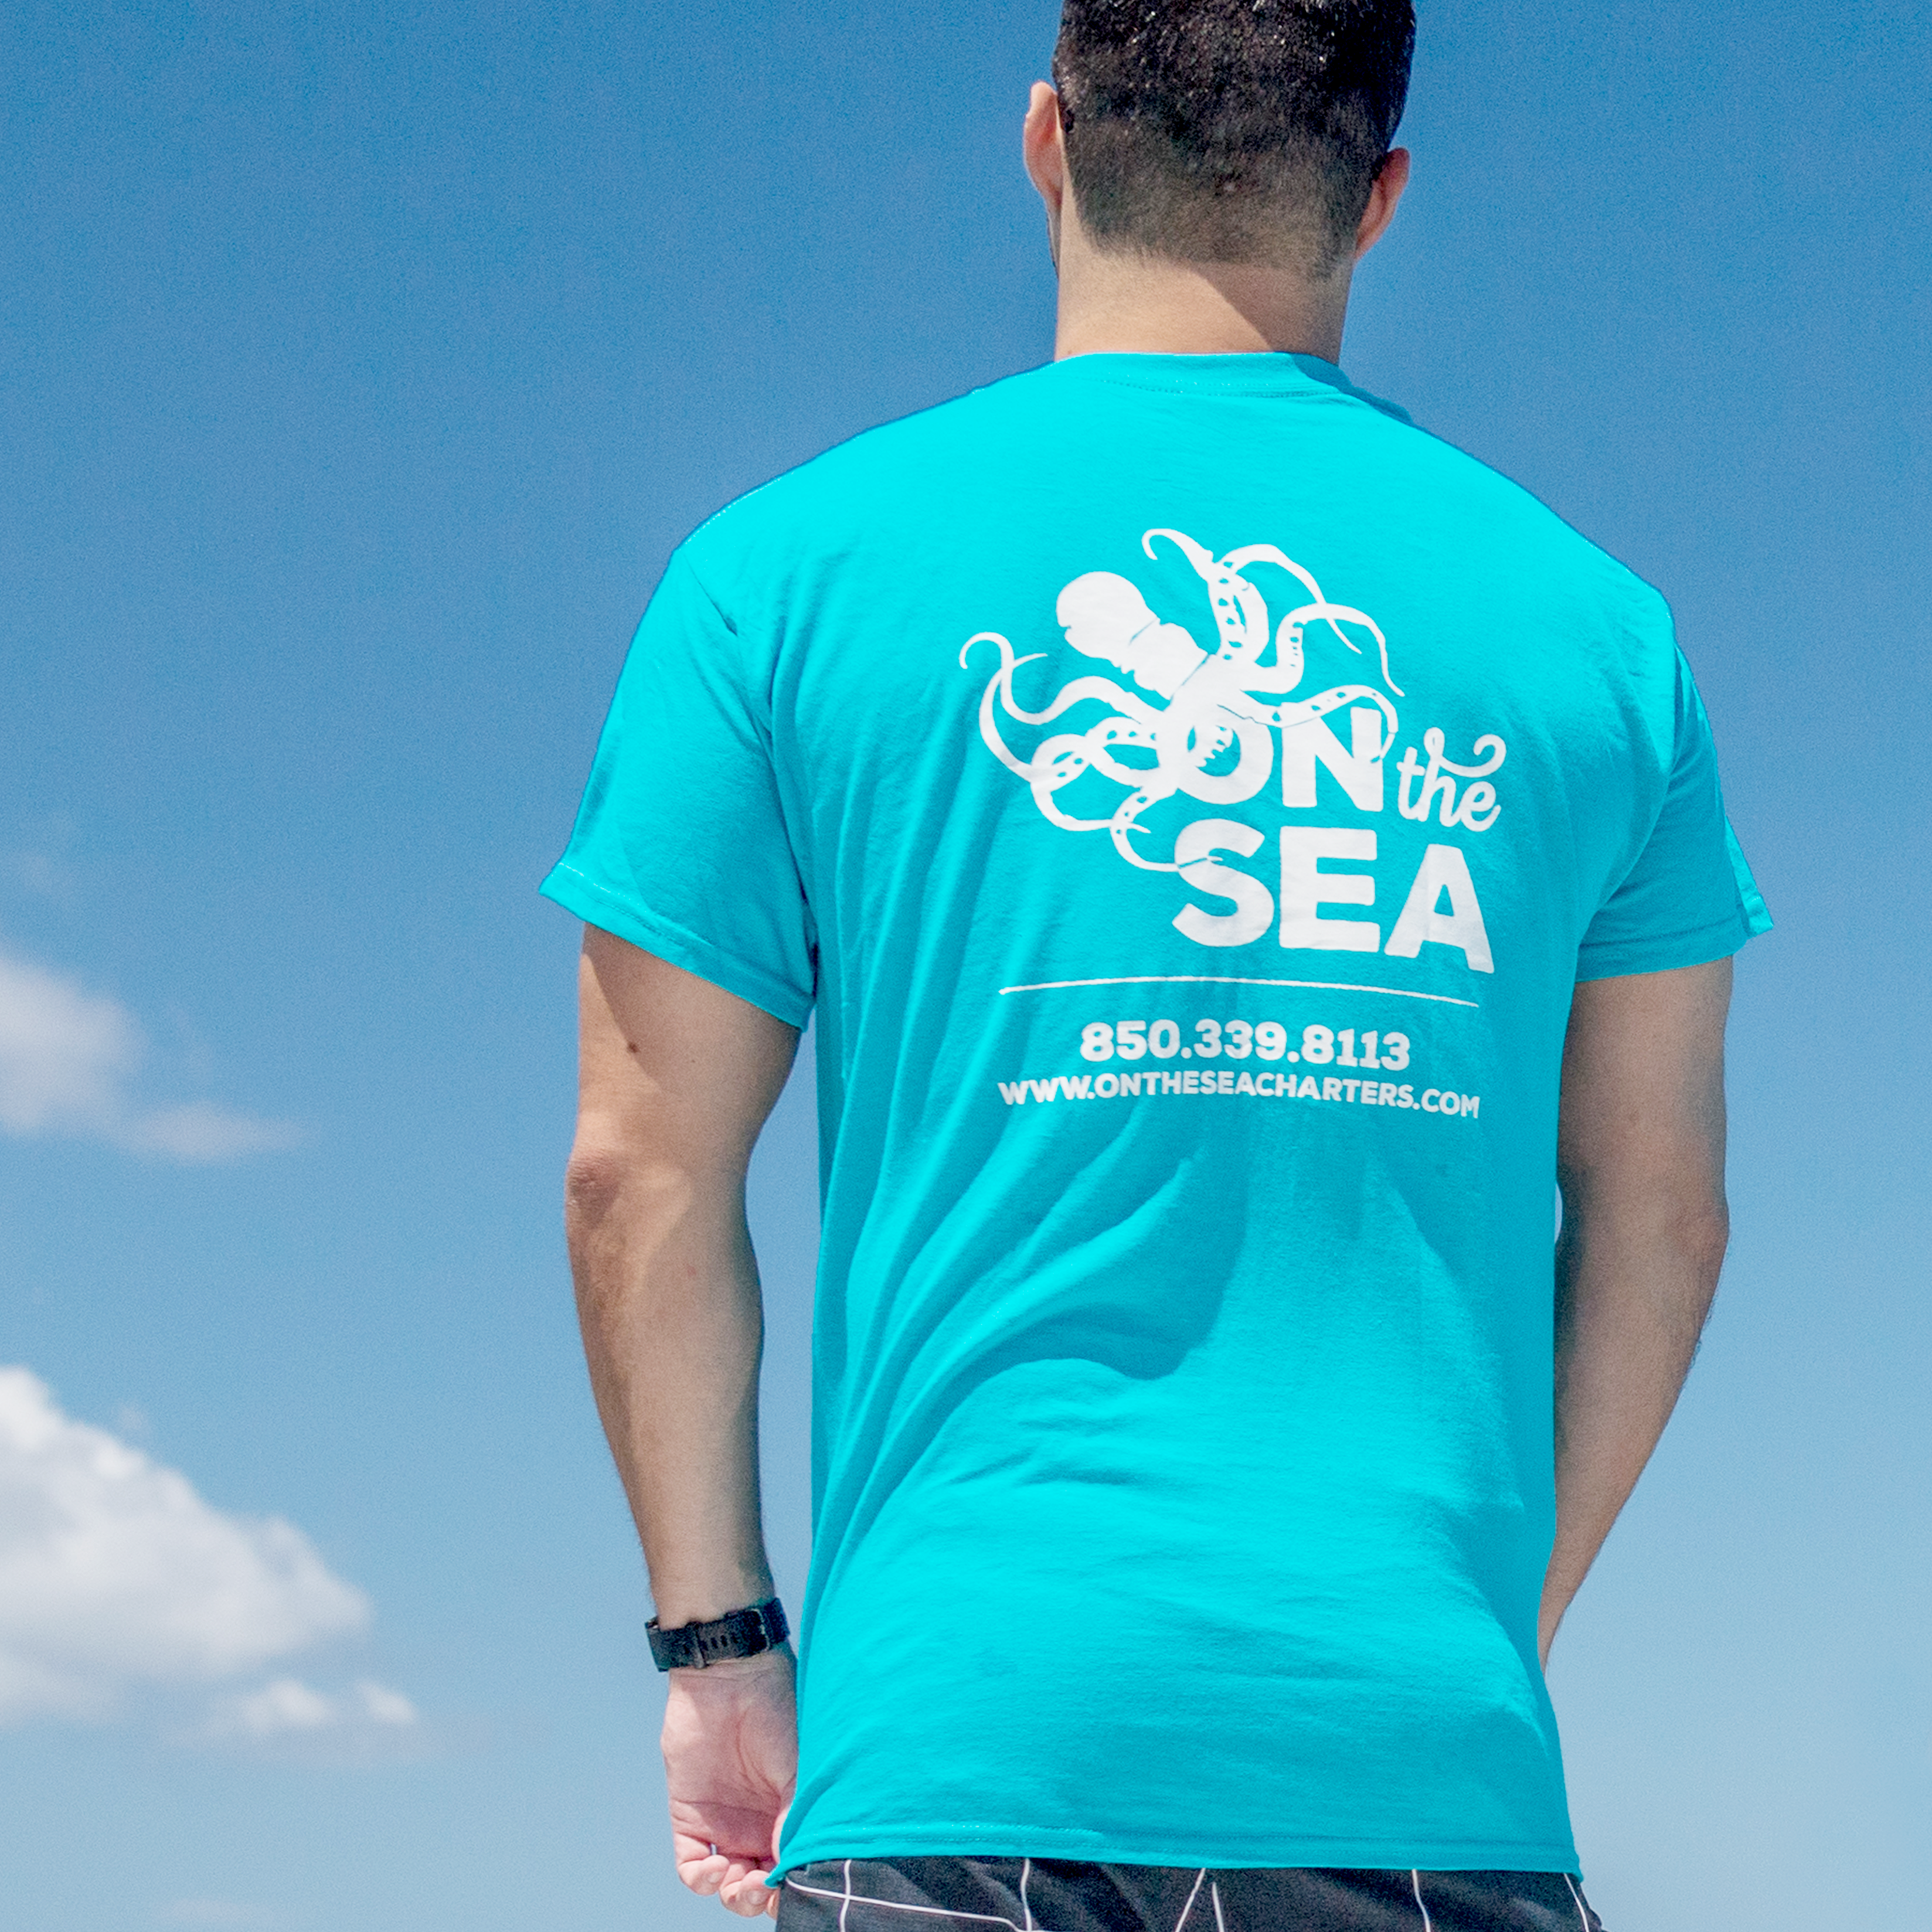 on-the-sea-charters-two-thumbs-motorboating-tee-2.png